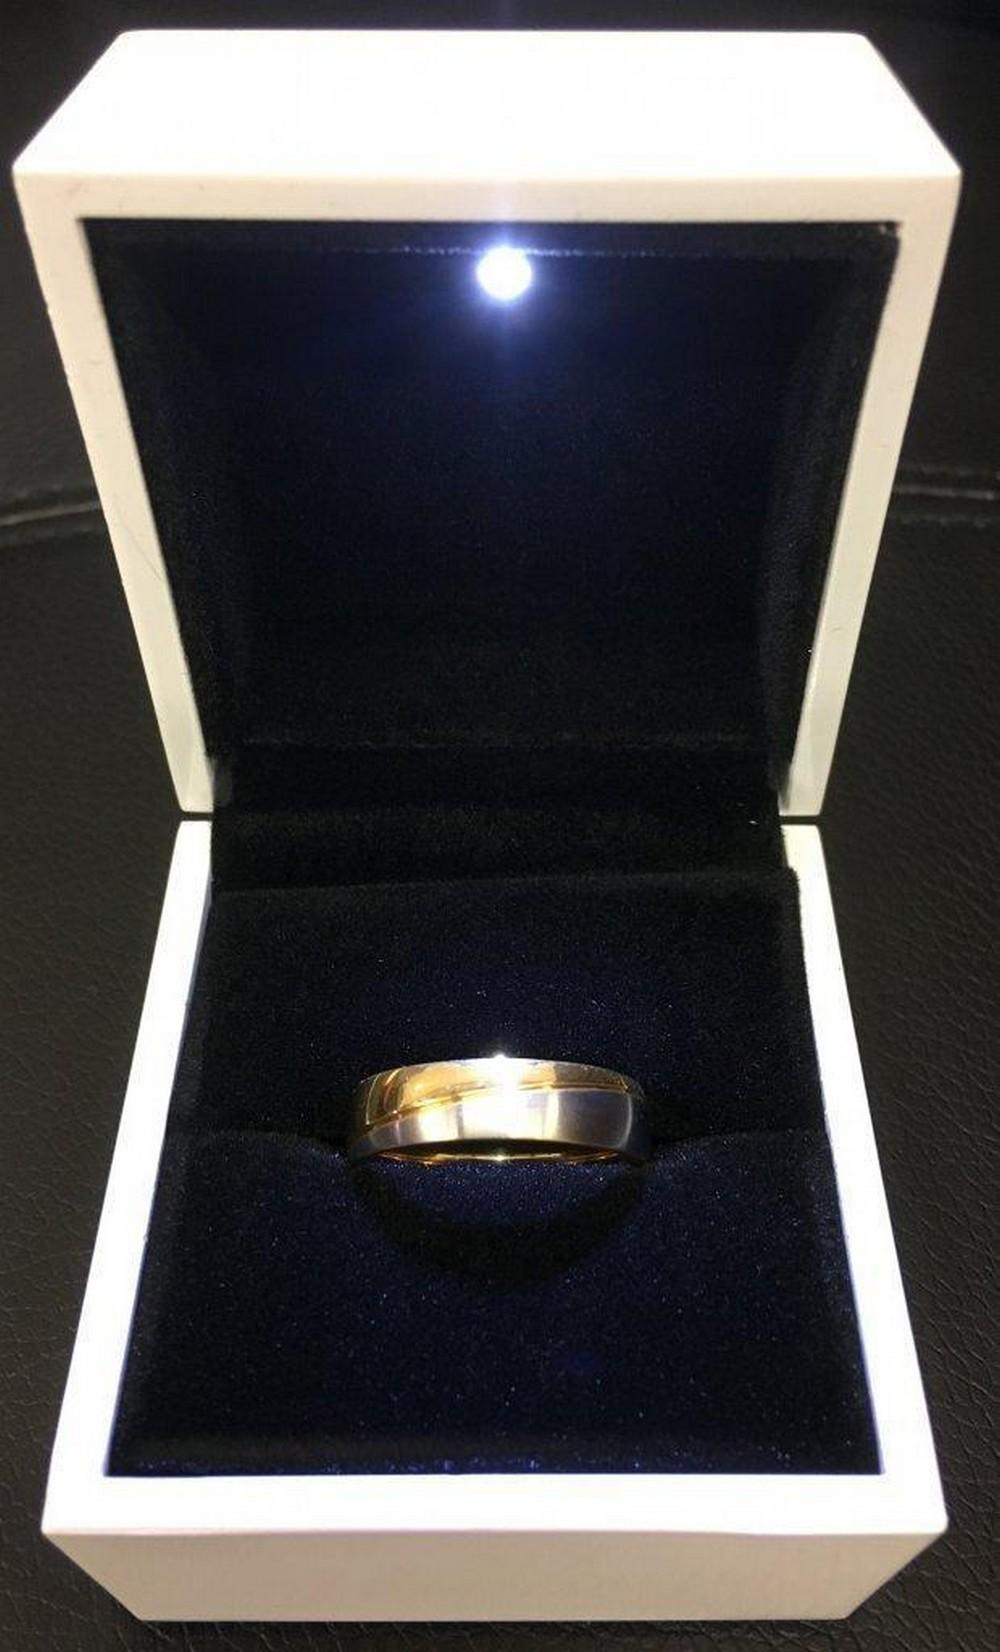 18kt Gold Plated Size 10 Men's Cross Band Ring With LED